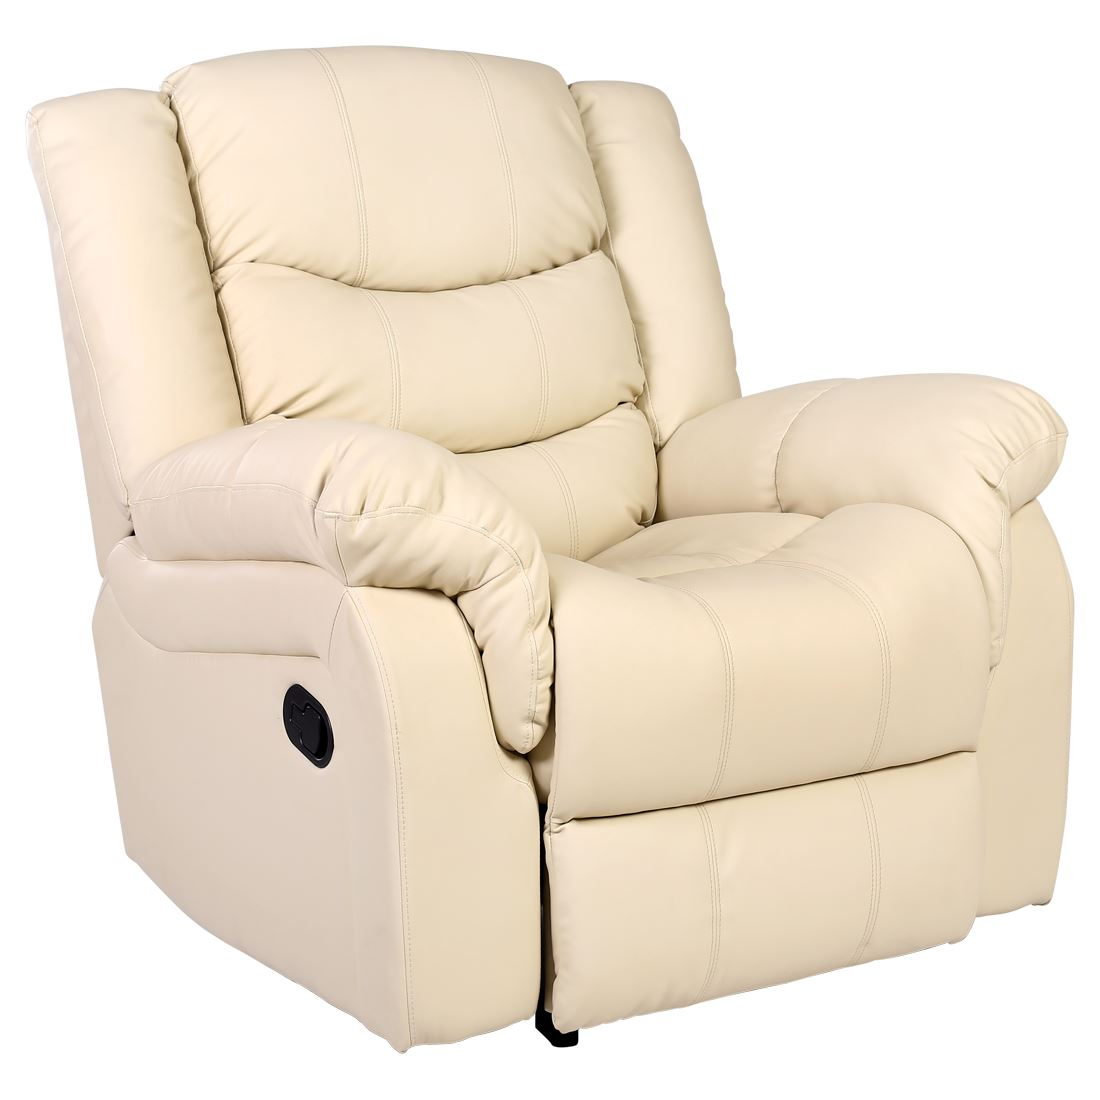 leather recliner armchair sofa home lounge chair reclining ebay